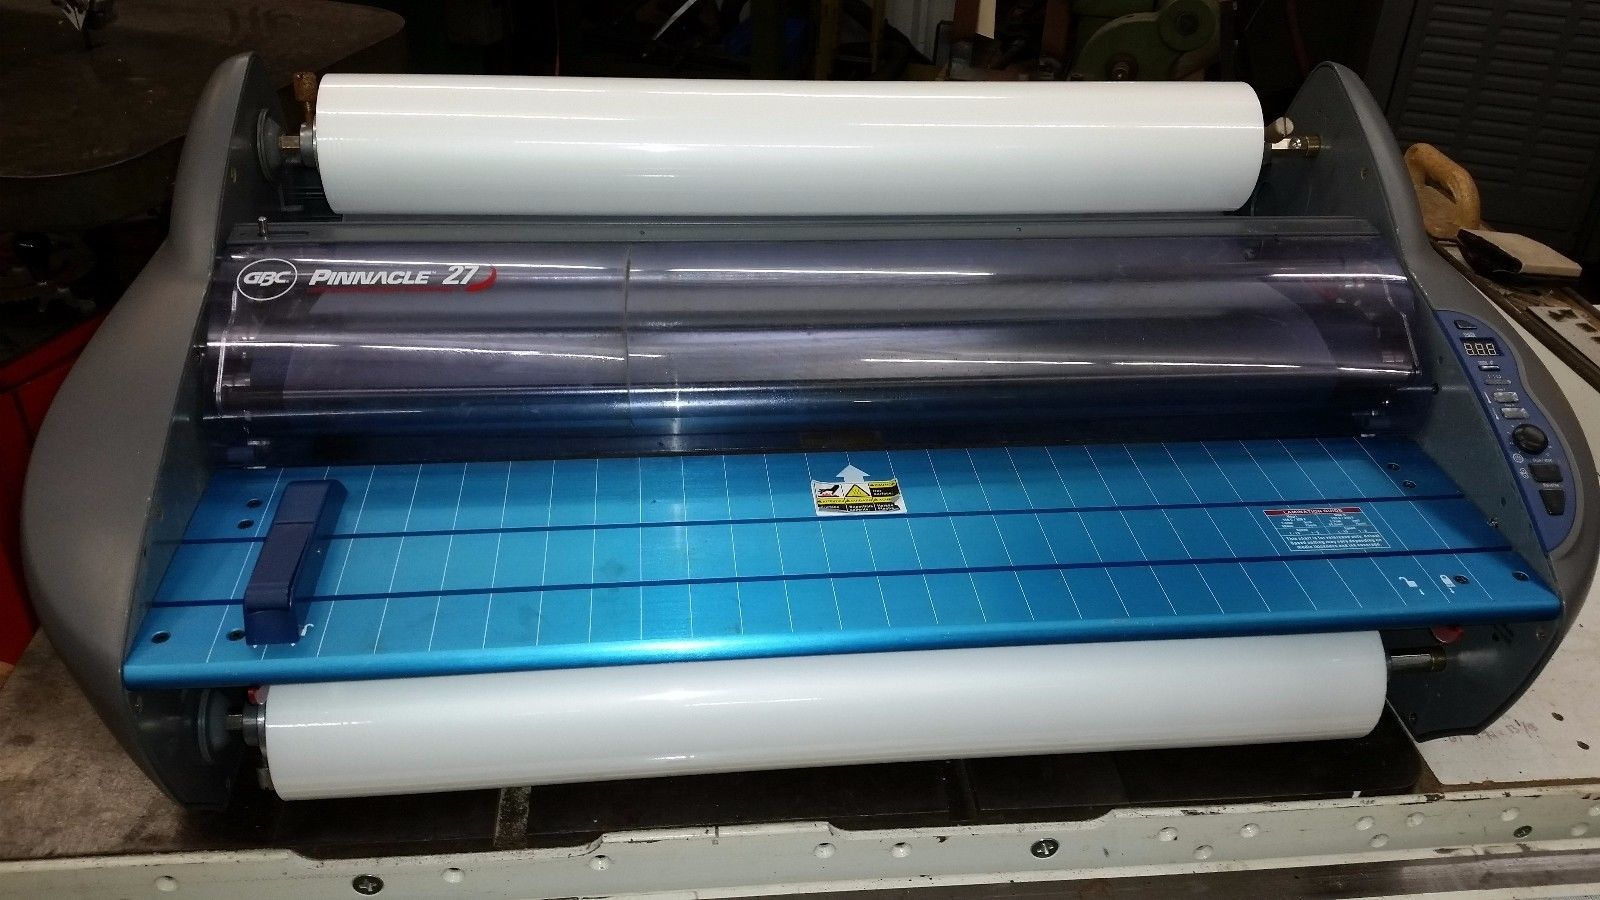 GBC Pinnacle 27 hot shoe document roll laminator nap1 nap2 & 500' rolls of film